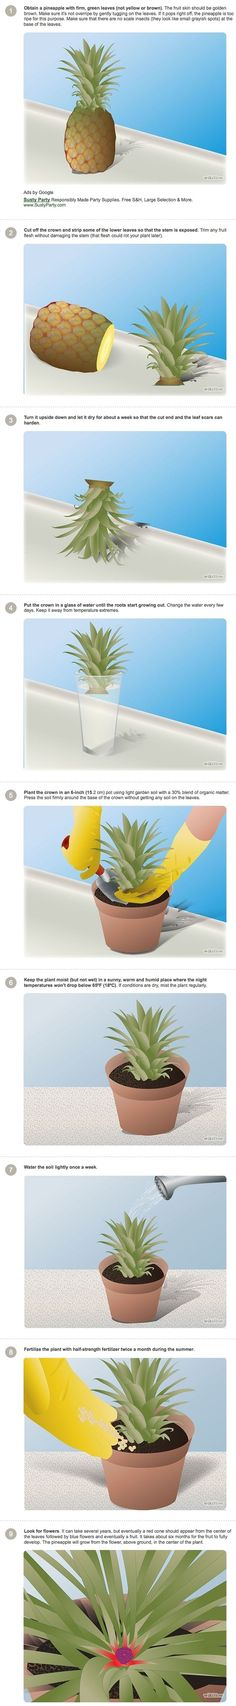 How to grow a pineapple // steps 1&2 are done, step 3 is in progress!